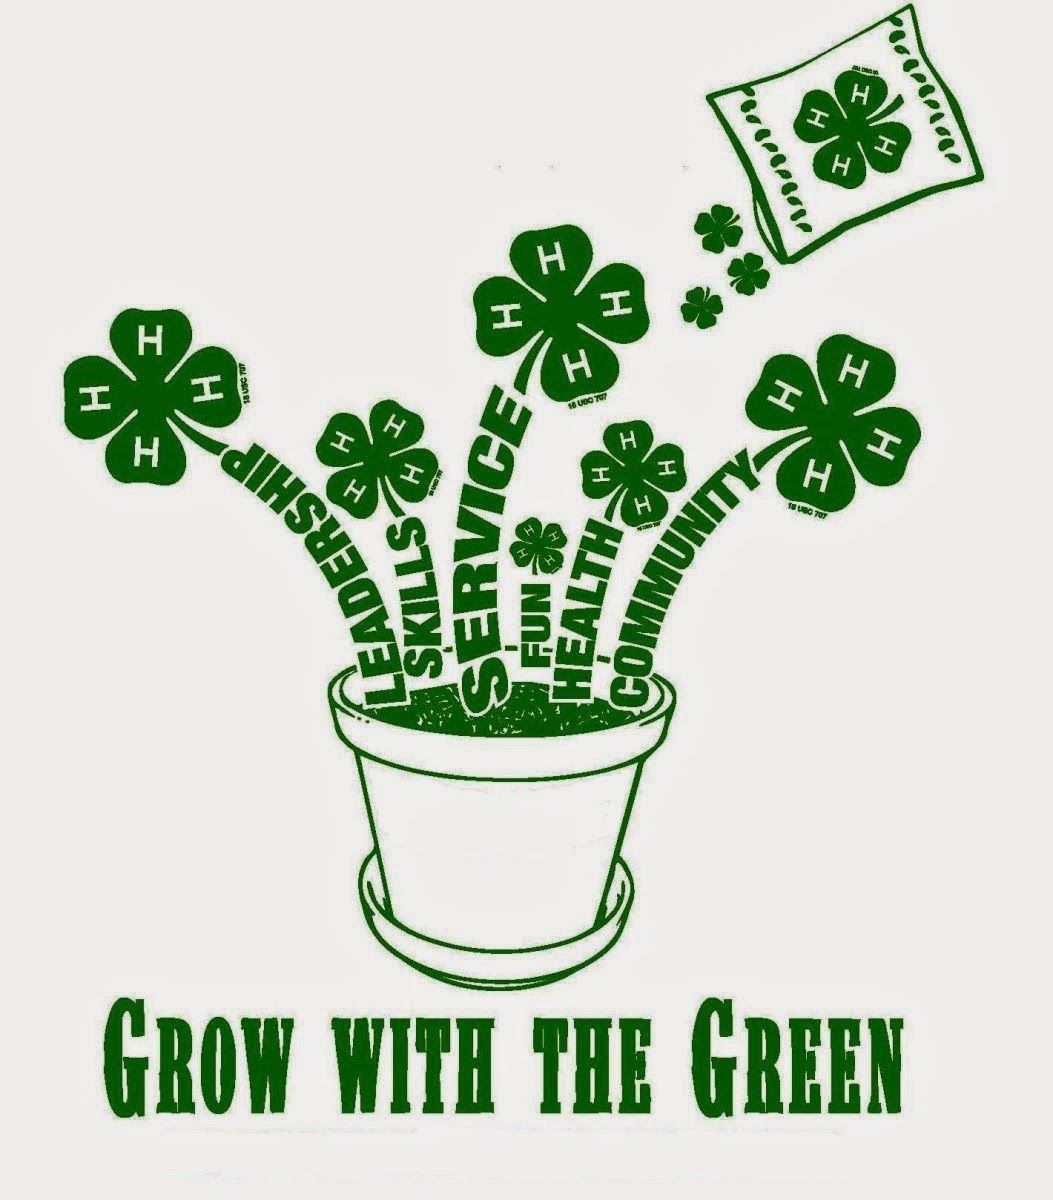 hight resolution of grow with the green would be great with our growing with kids garden 4 h